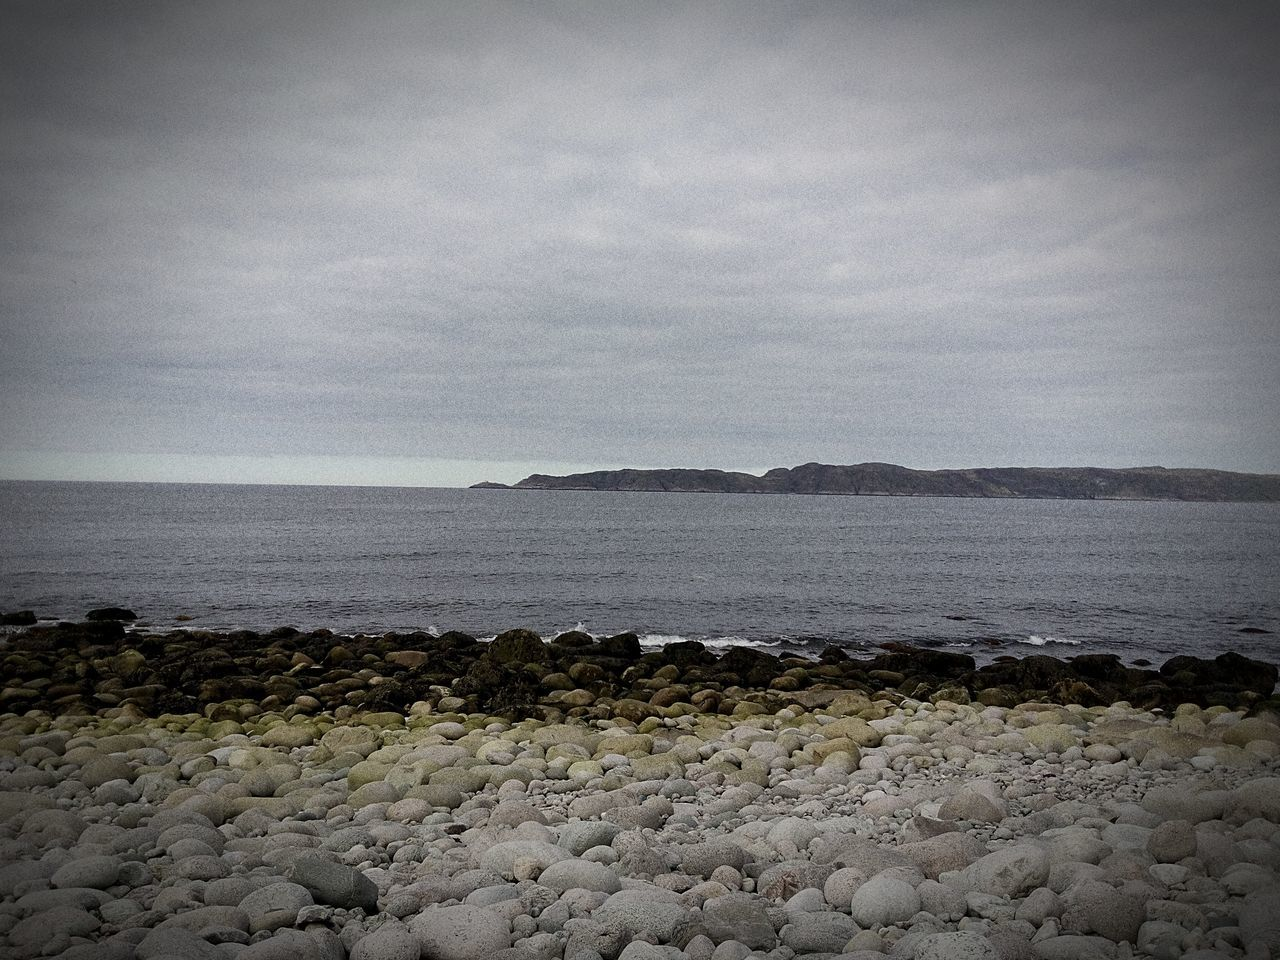 sea, water, nature, tranquility, sky, scenics, no people, pebble, tranquil scene, beauty in nature, beach, outdoors, pebble beach, horizon over water, day